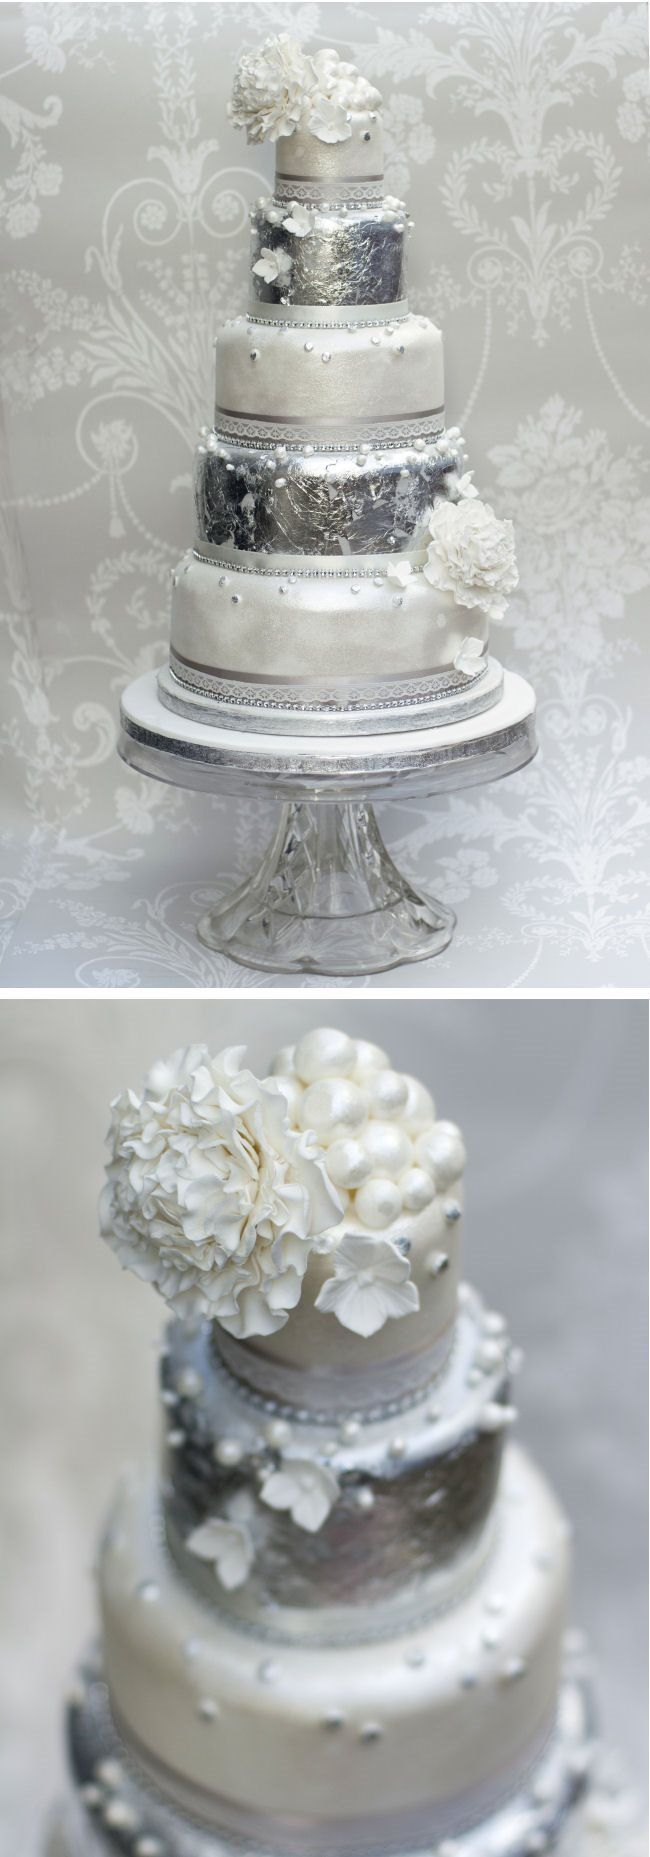 Silver Wedding Cake Ideas; Liggy\'s Cakes | Wedding | Pinterest ...